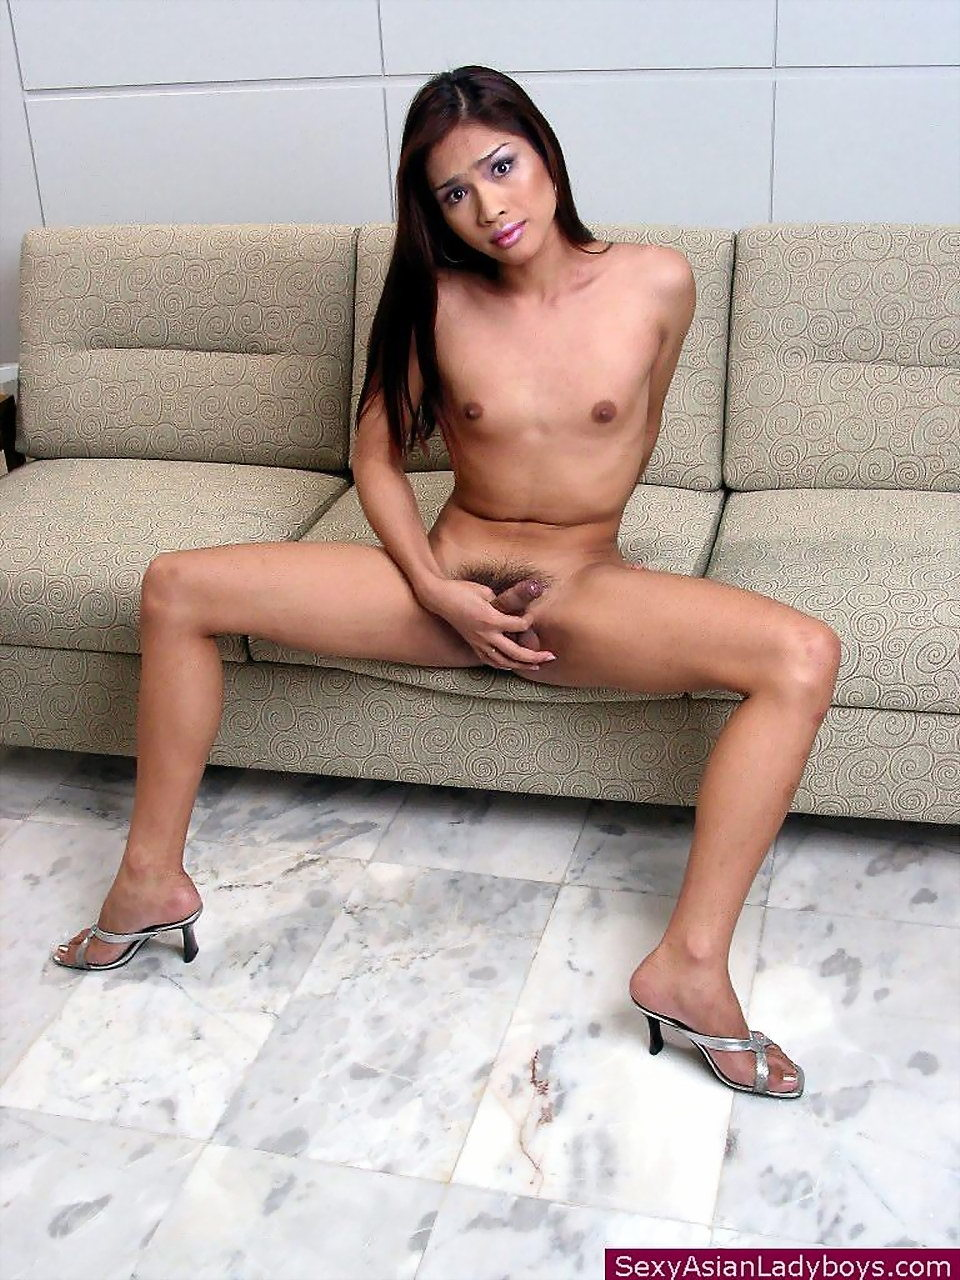 Thai Trannie Stripping And Playing With Her Hardon